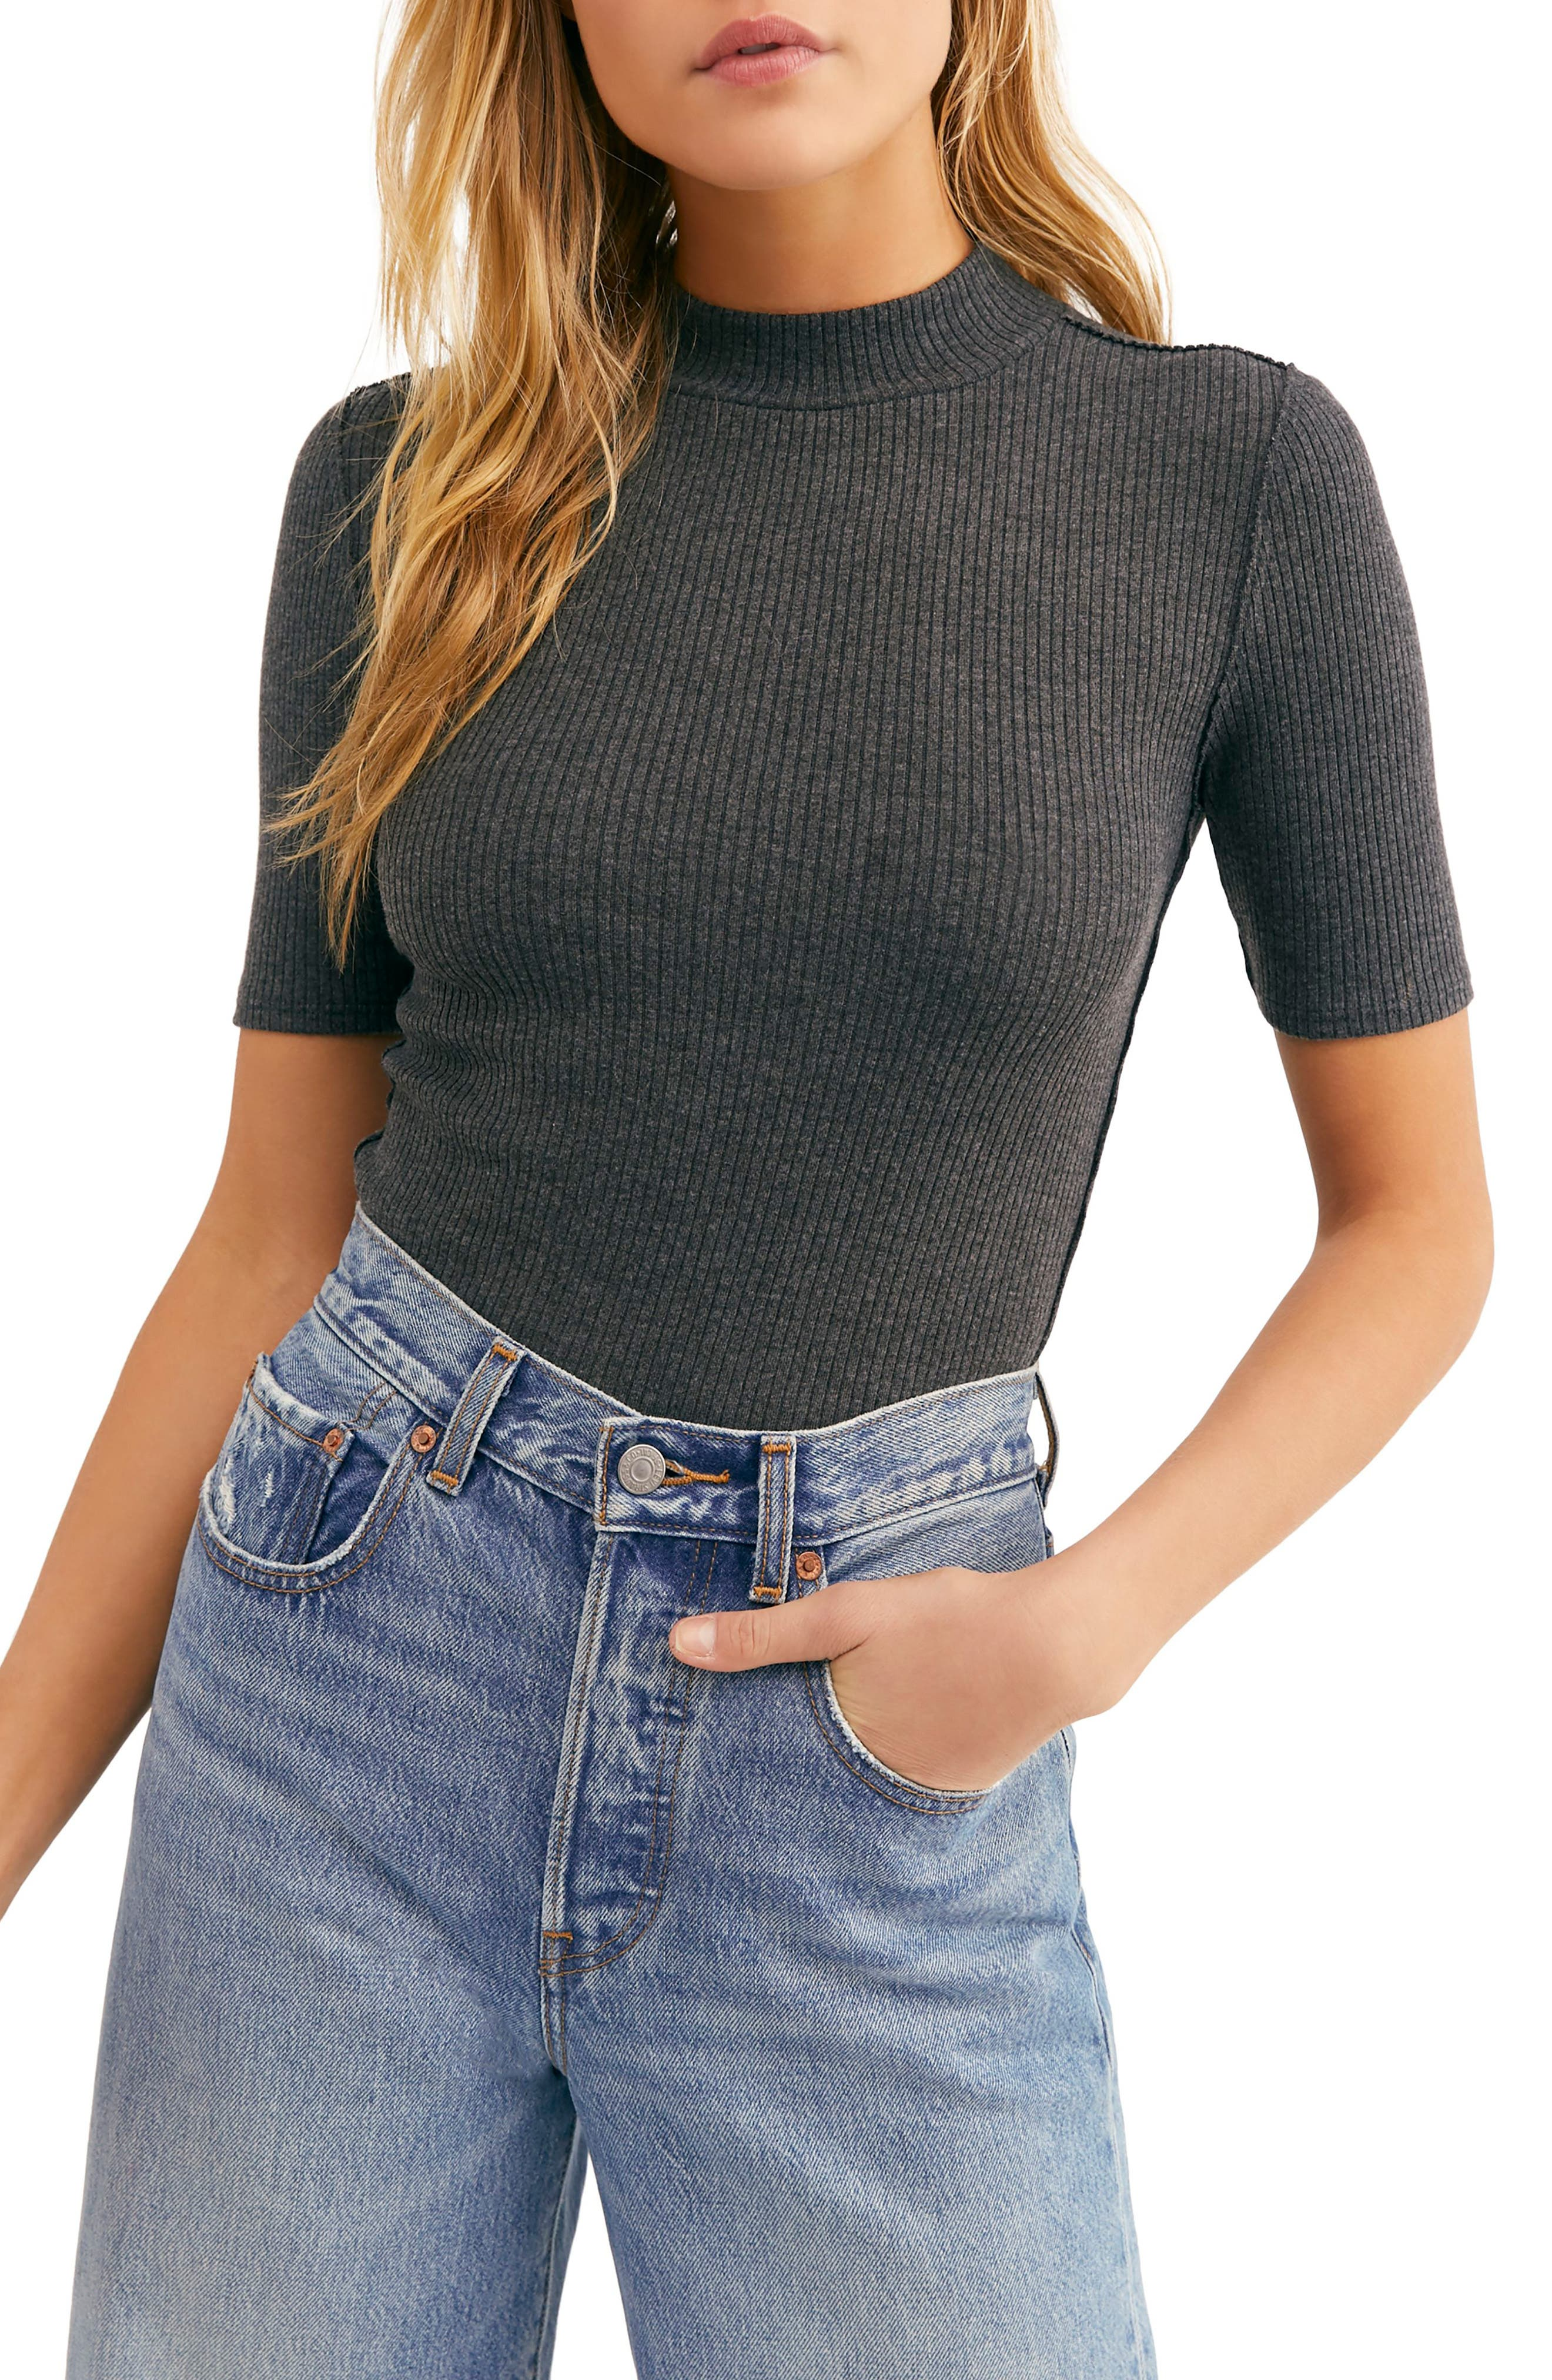 FREE PEOPLE, Good Vibes Ribbed Top, Main thumbnail 1, color, 020